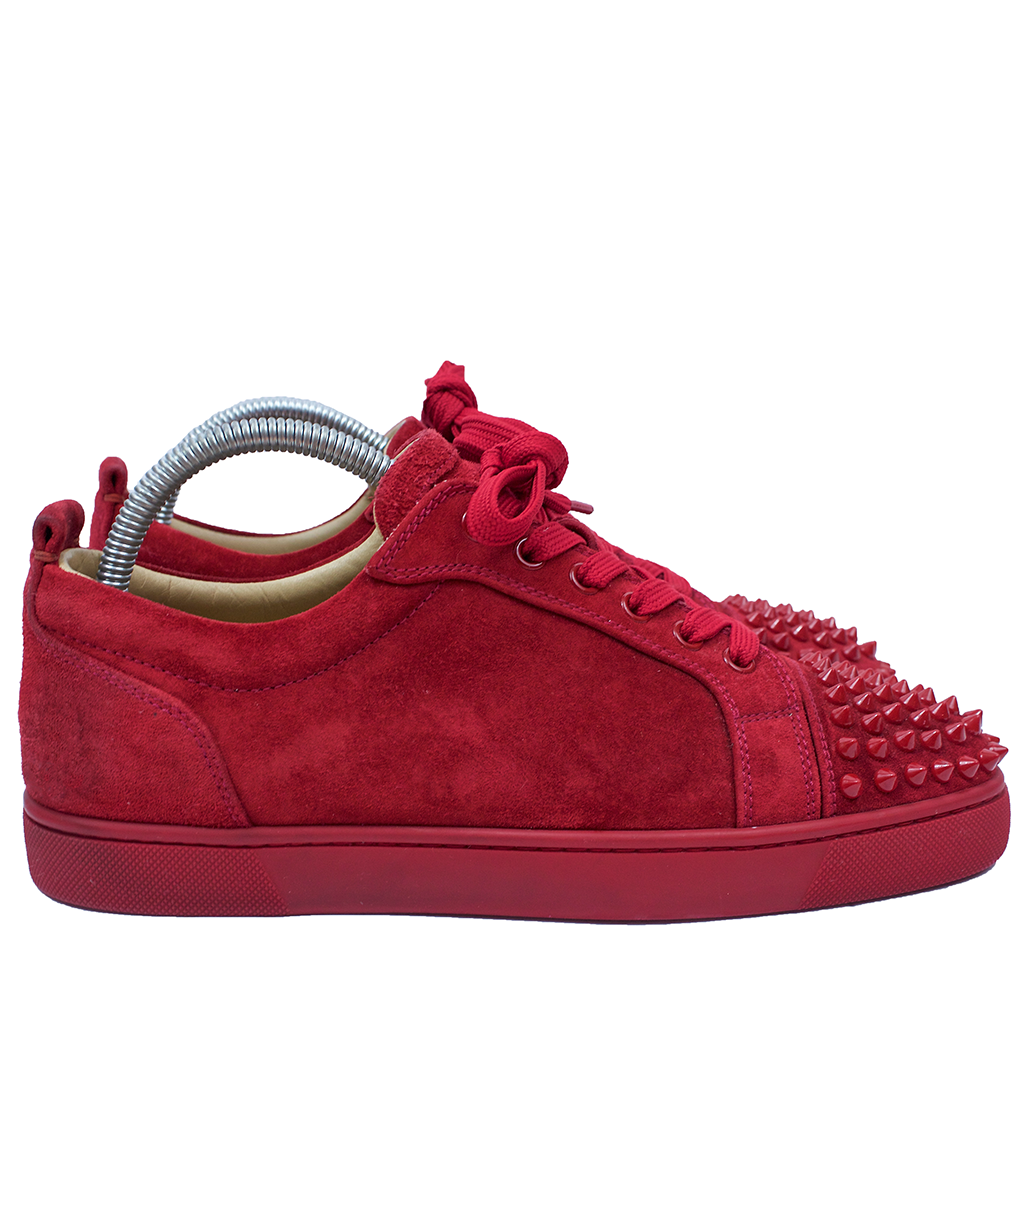 Christian Louboutin Red Low Top Suede Spike Sneakers  d1f2f0537658